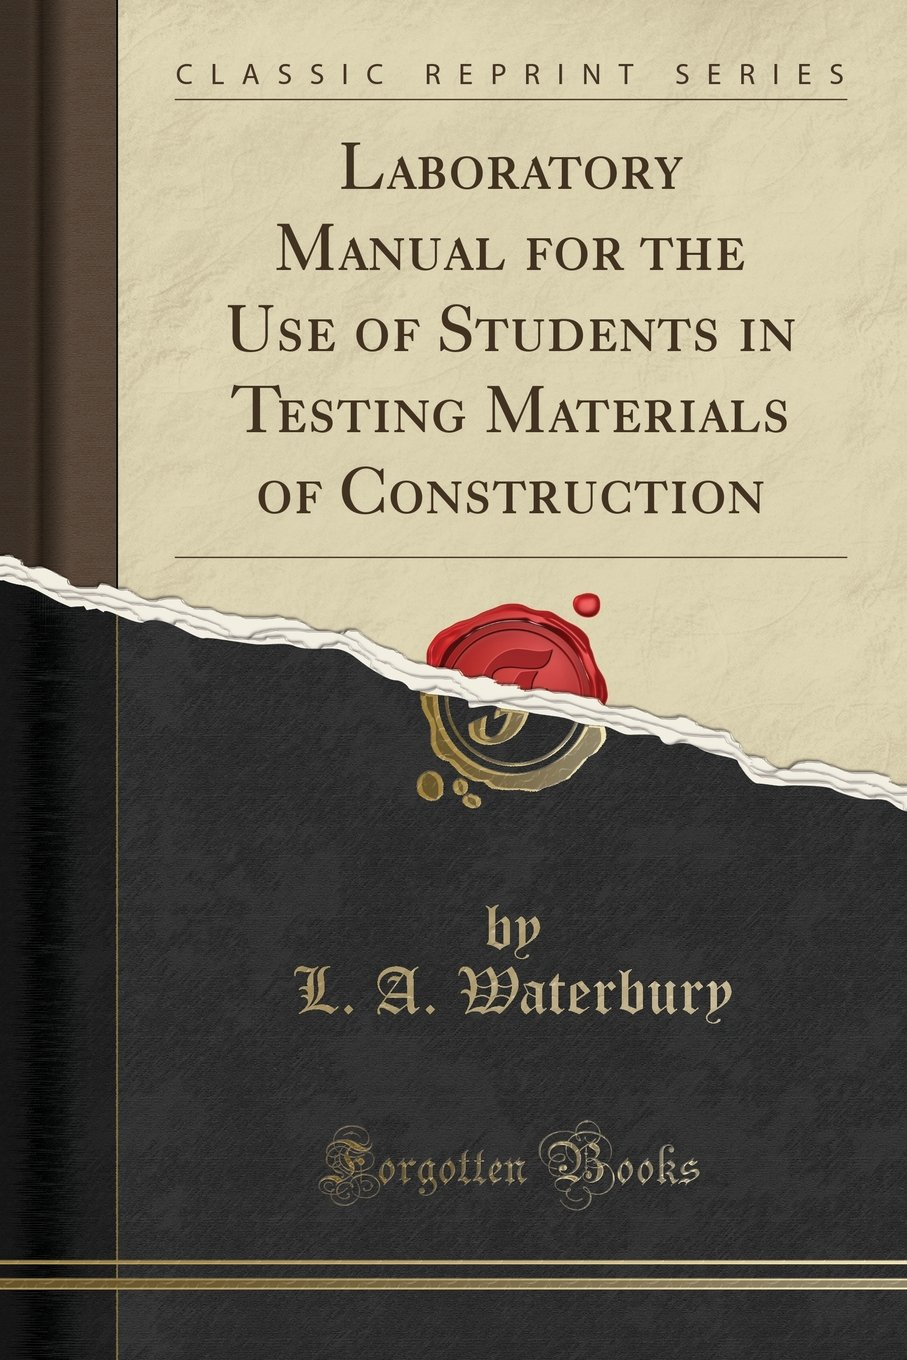 Laboratory Manual for the Use of Students in Testing Materials of  Construction (Classic Reprint): L. A. Waterbury: 9781330100042: Amazon.com:  Books